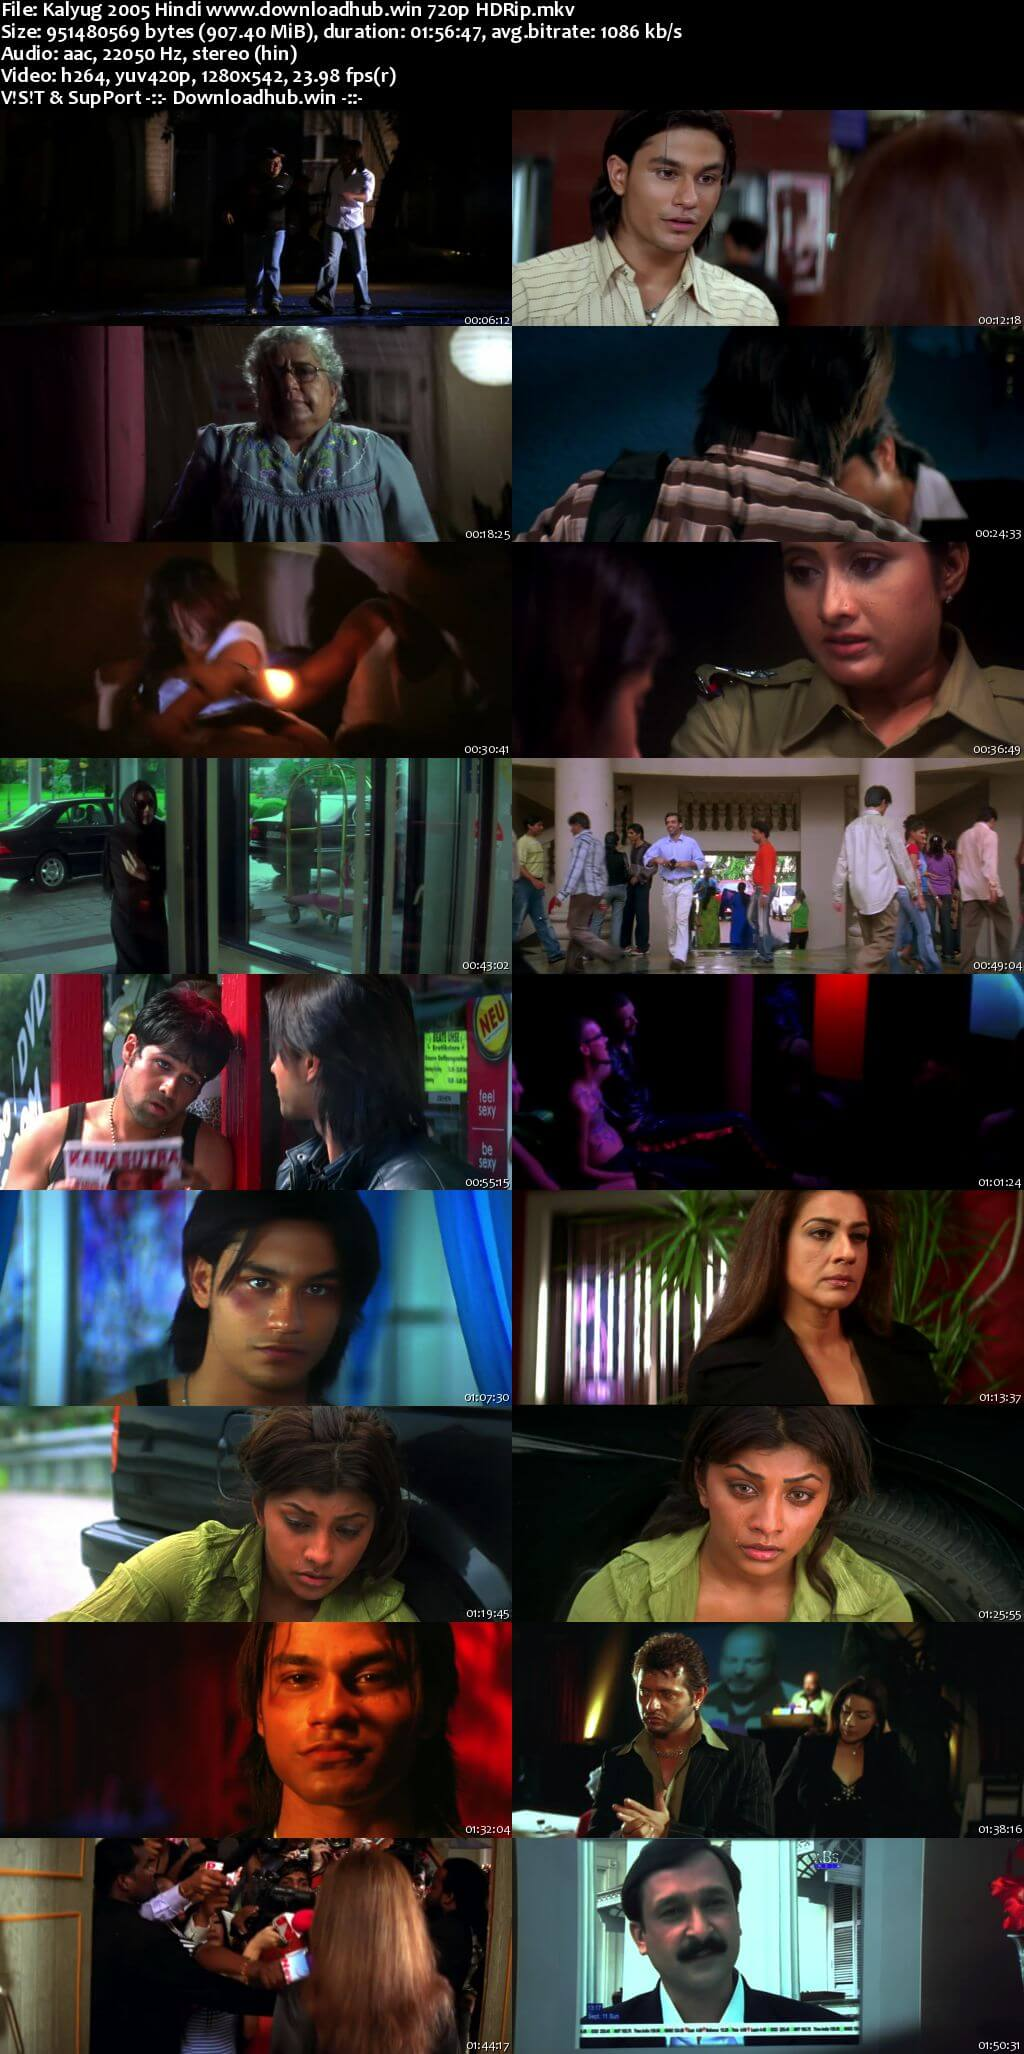 Kalyug 2005 Hindi 720p HDRip x264